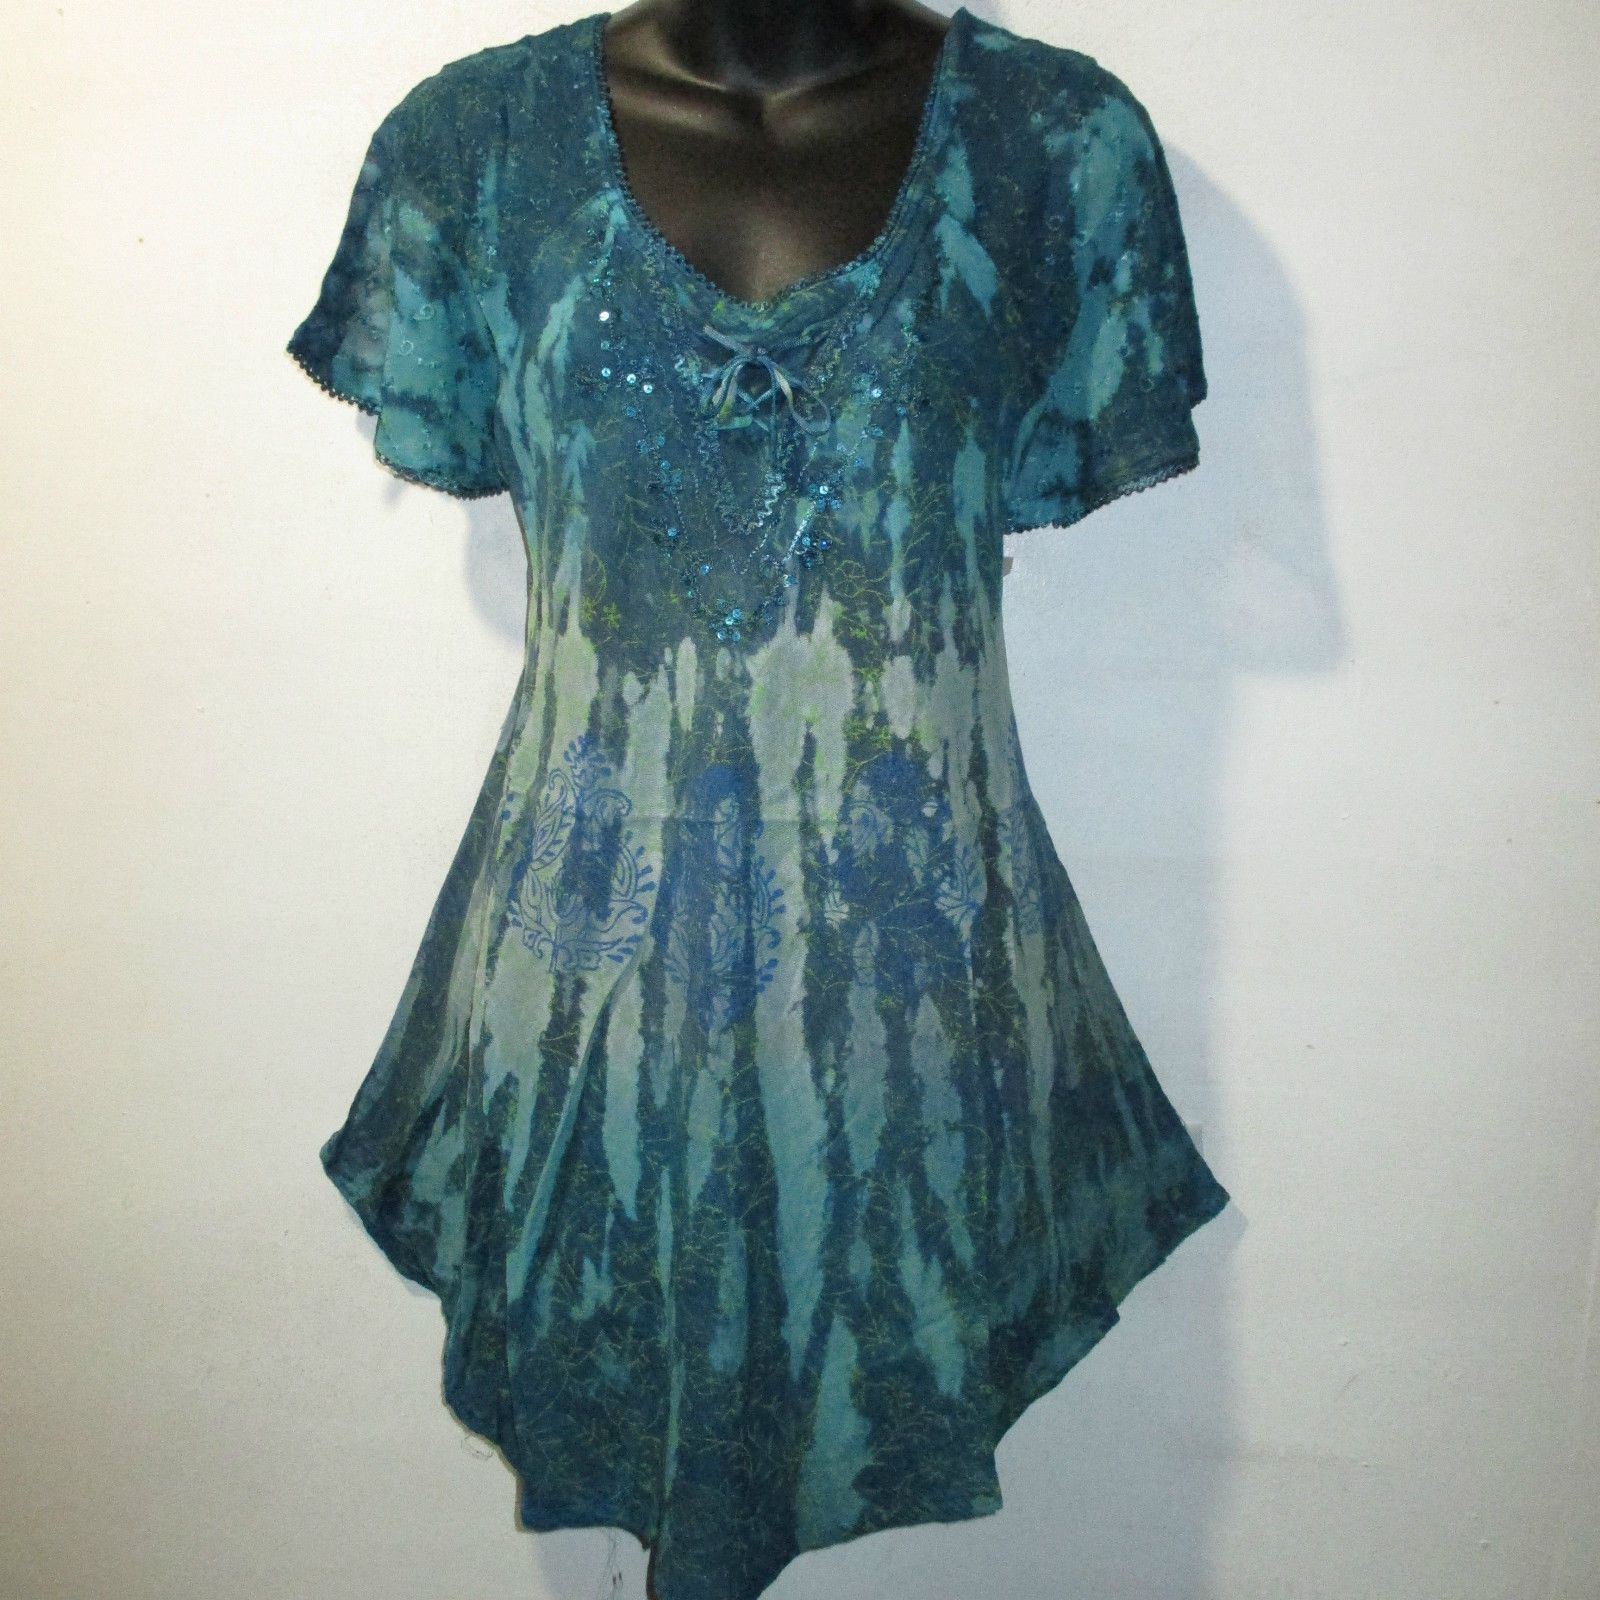 Green lace up dress  Top Fits X X X Plus Teal Blue Green Floral Tie Dye Lace Up A